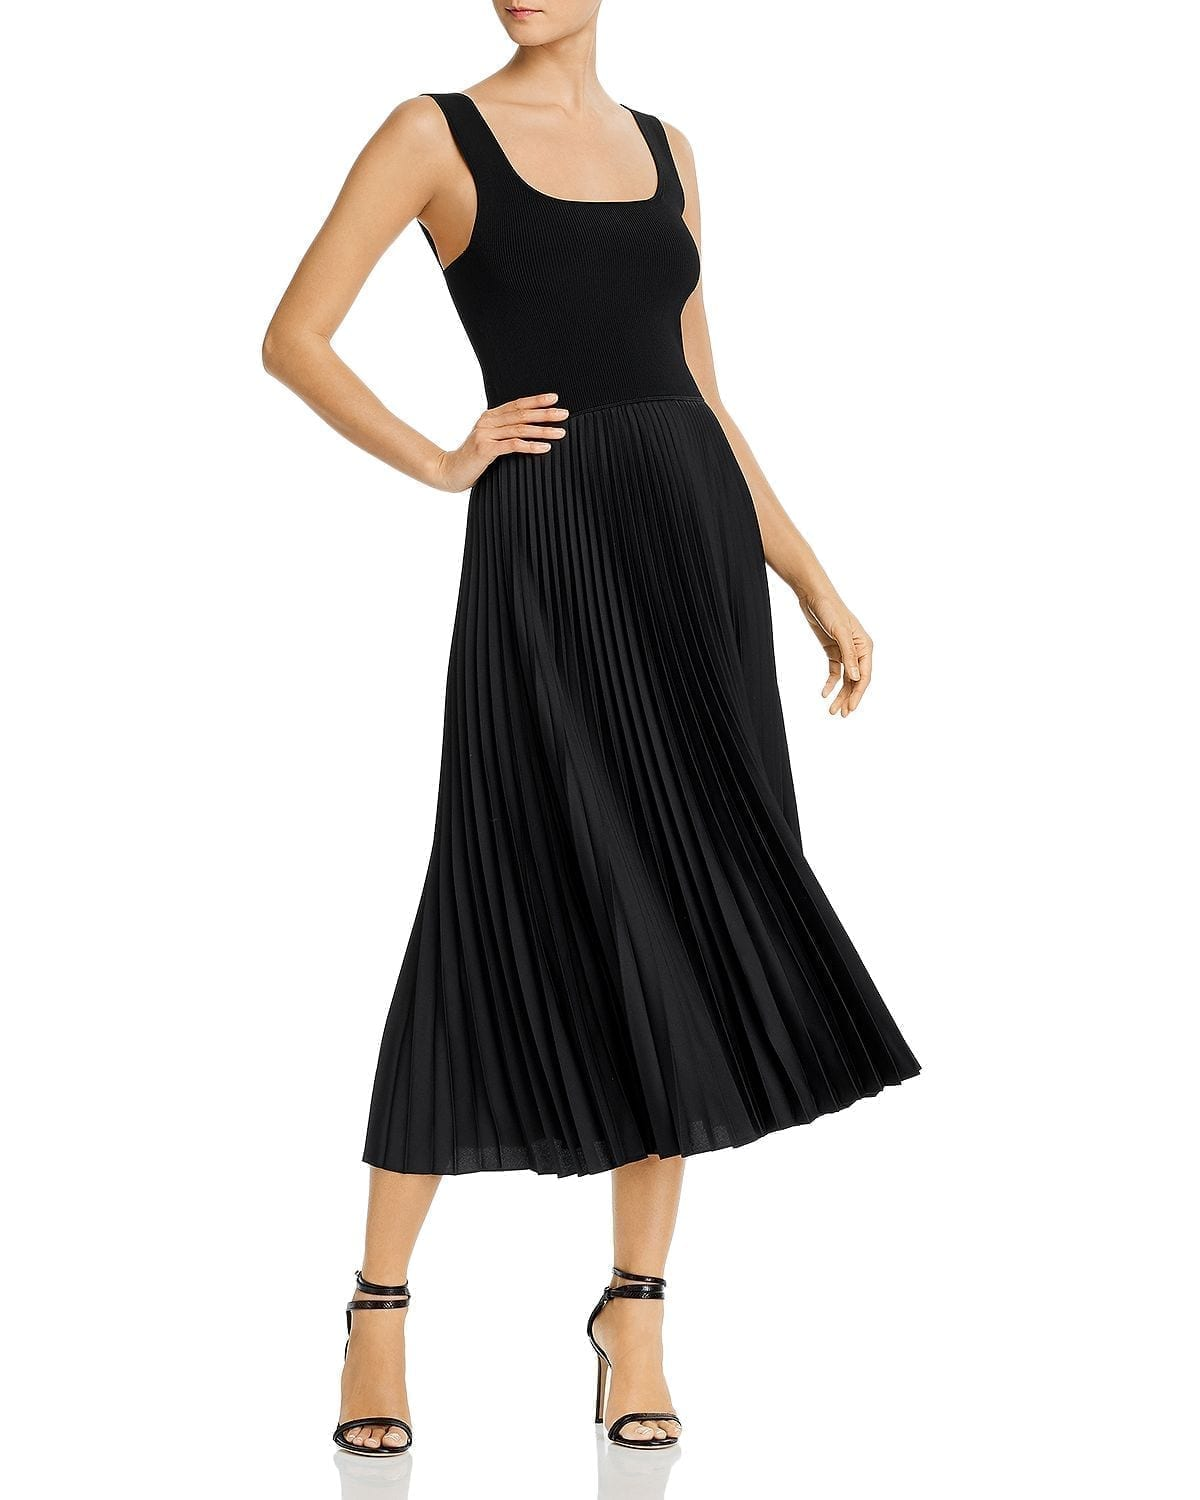 THEORY Pleated Square-Neck Ribbed Midi Dress